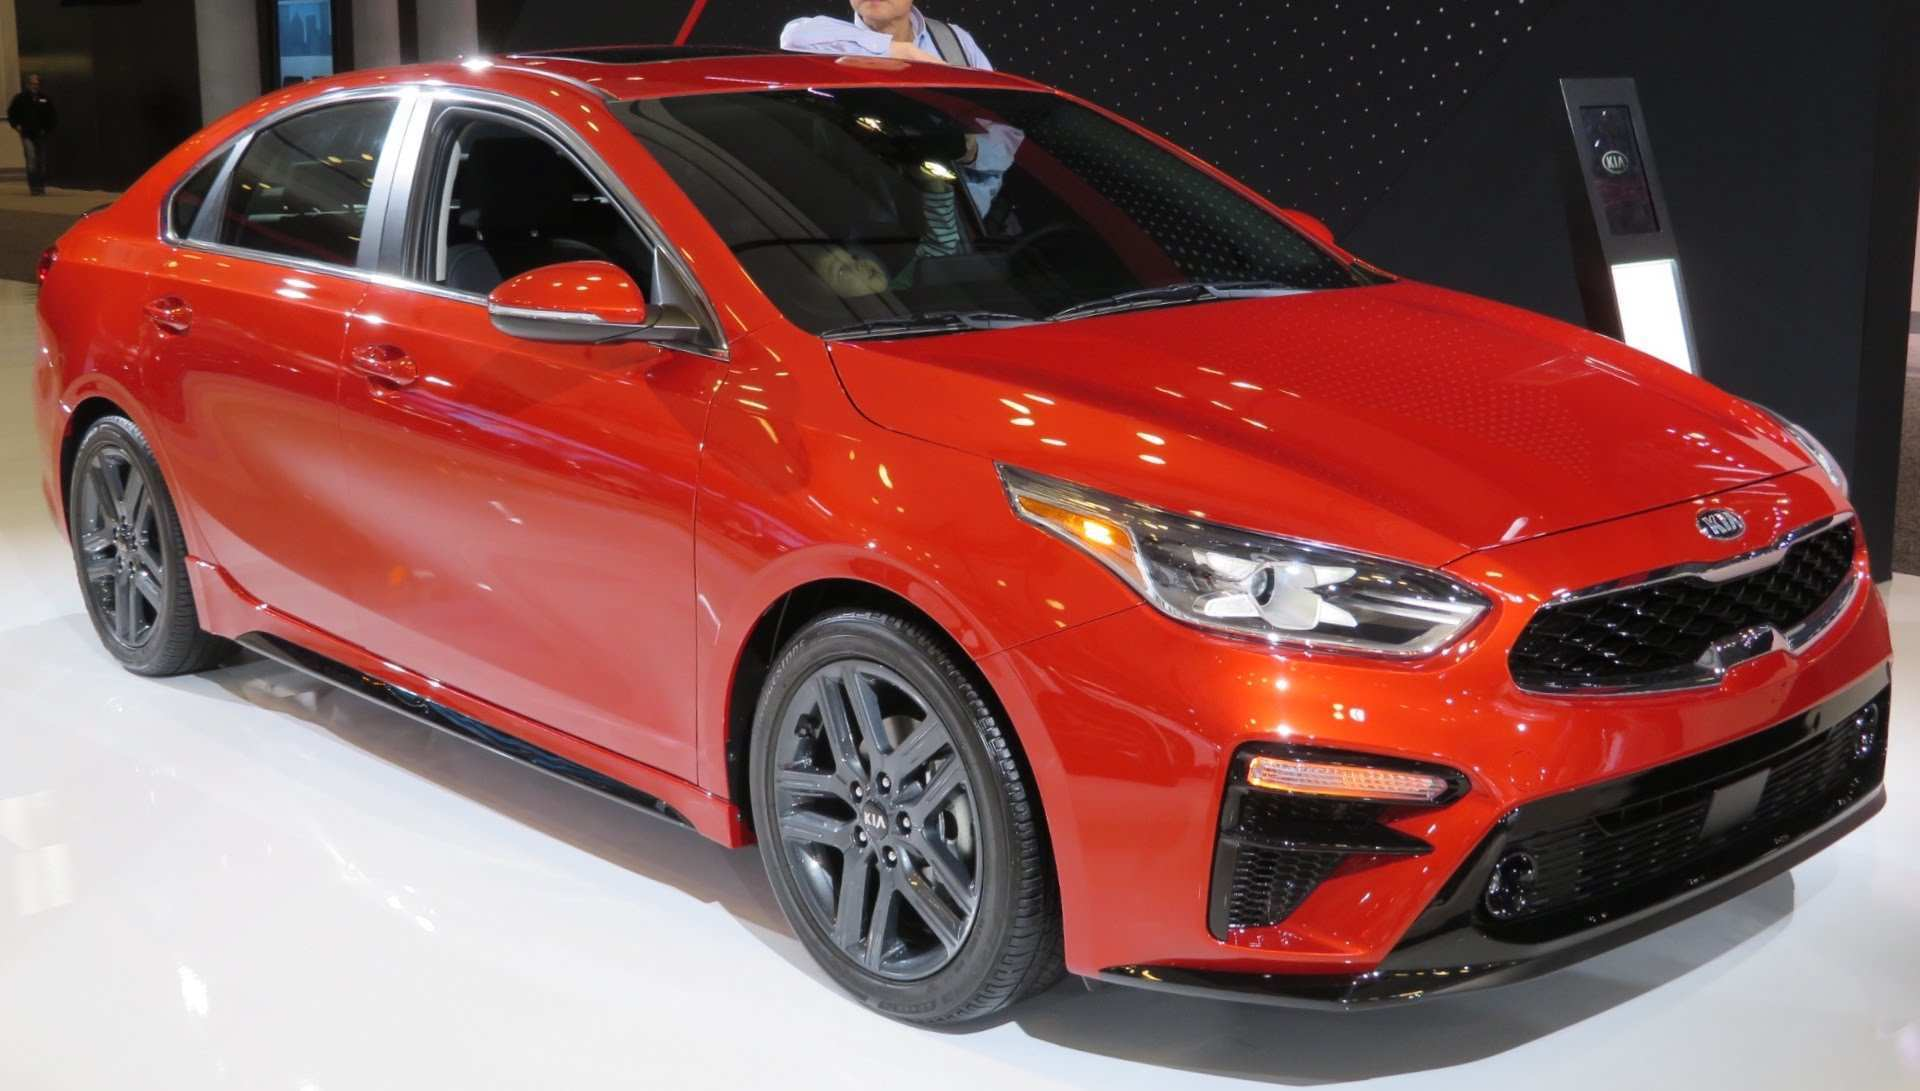 89 Best Review The Kia Forte 2019 Specs And Review Performance for The Kia Forte 2019 Specs And Review